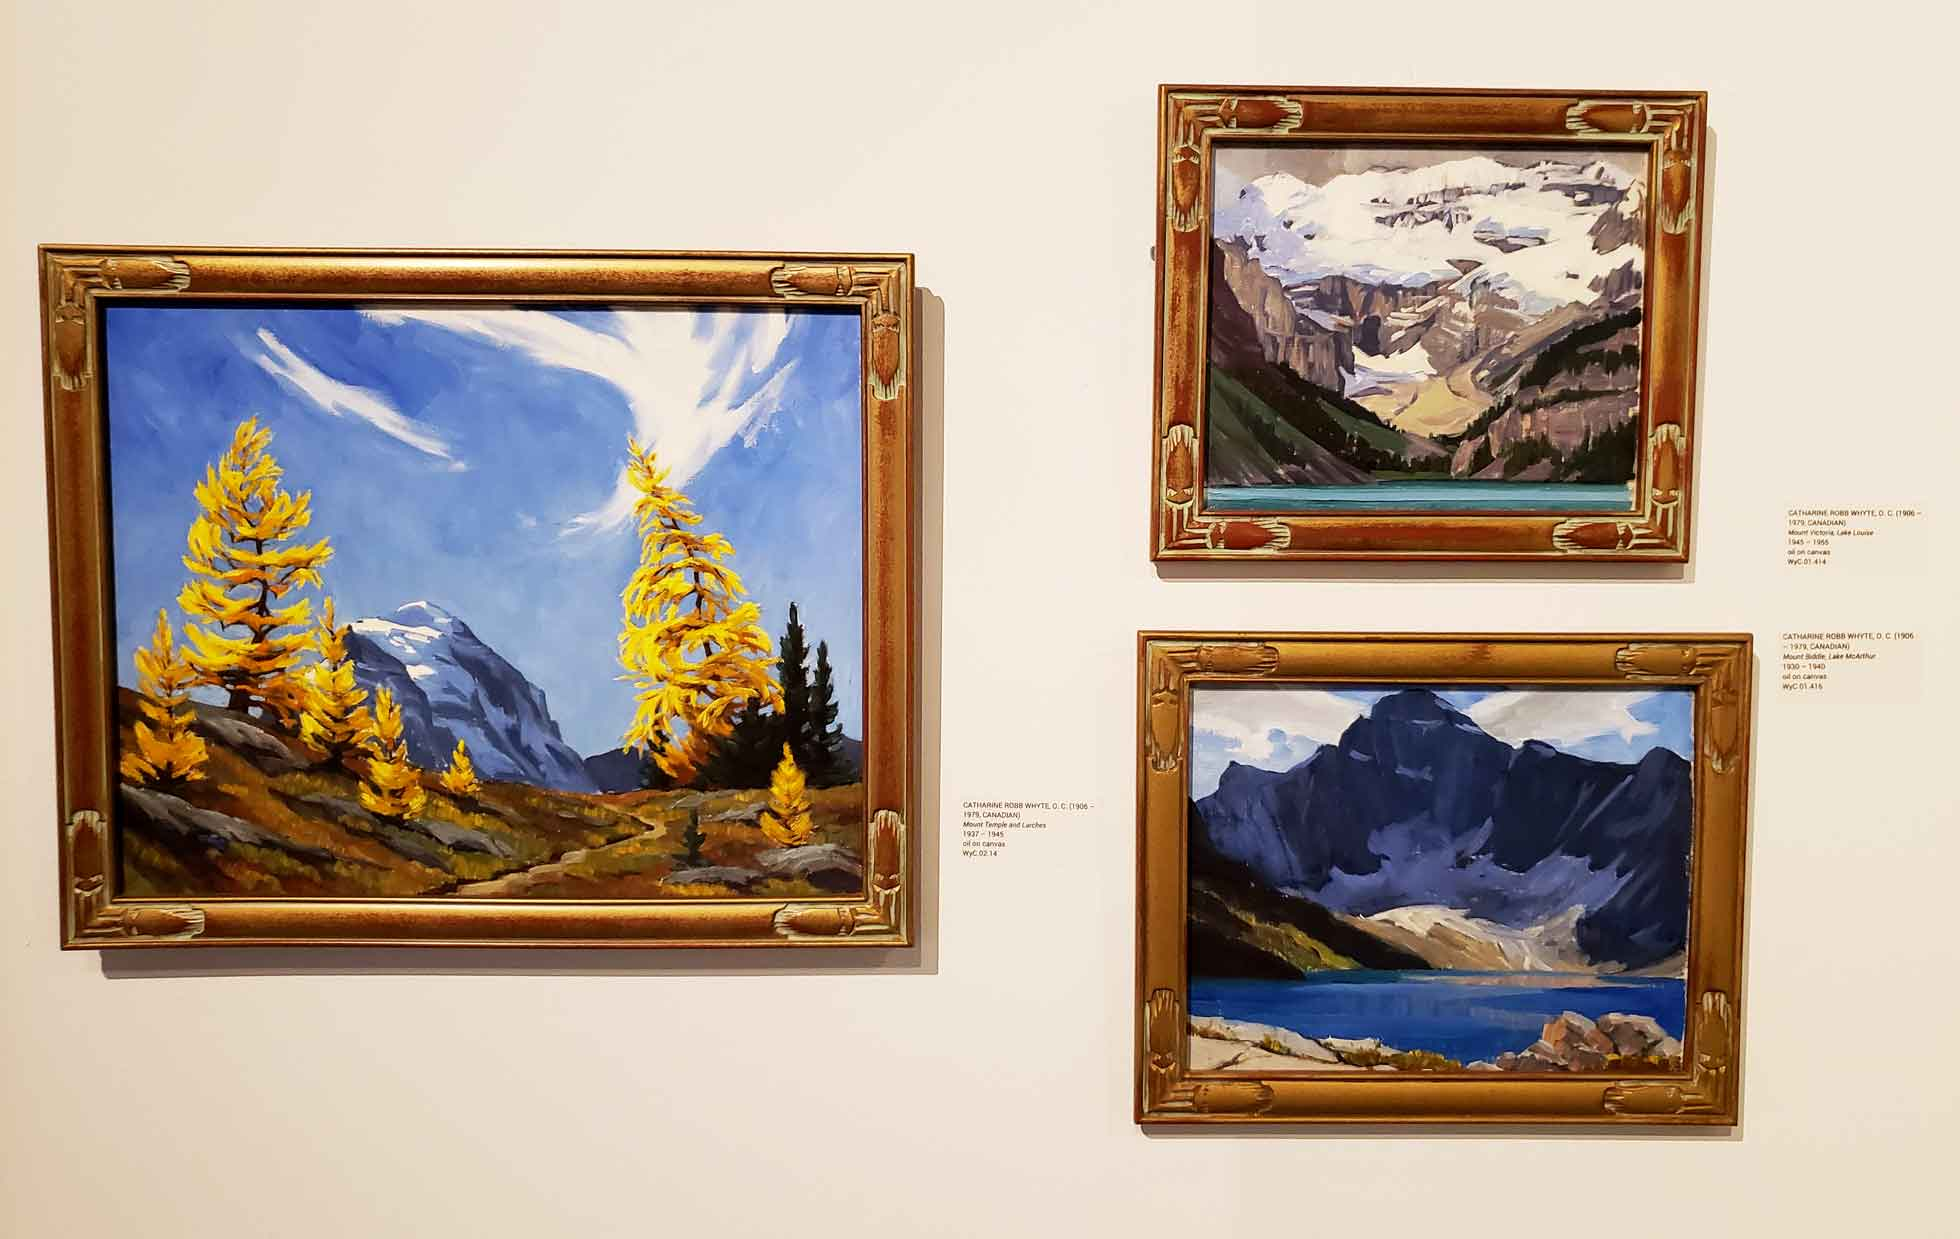 Paintings by Whyte Museum founder Catharine Robb Whyte